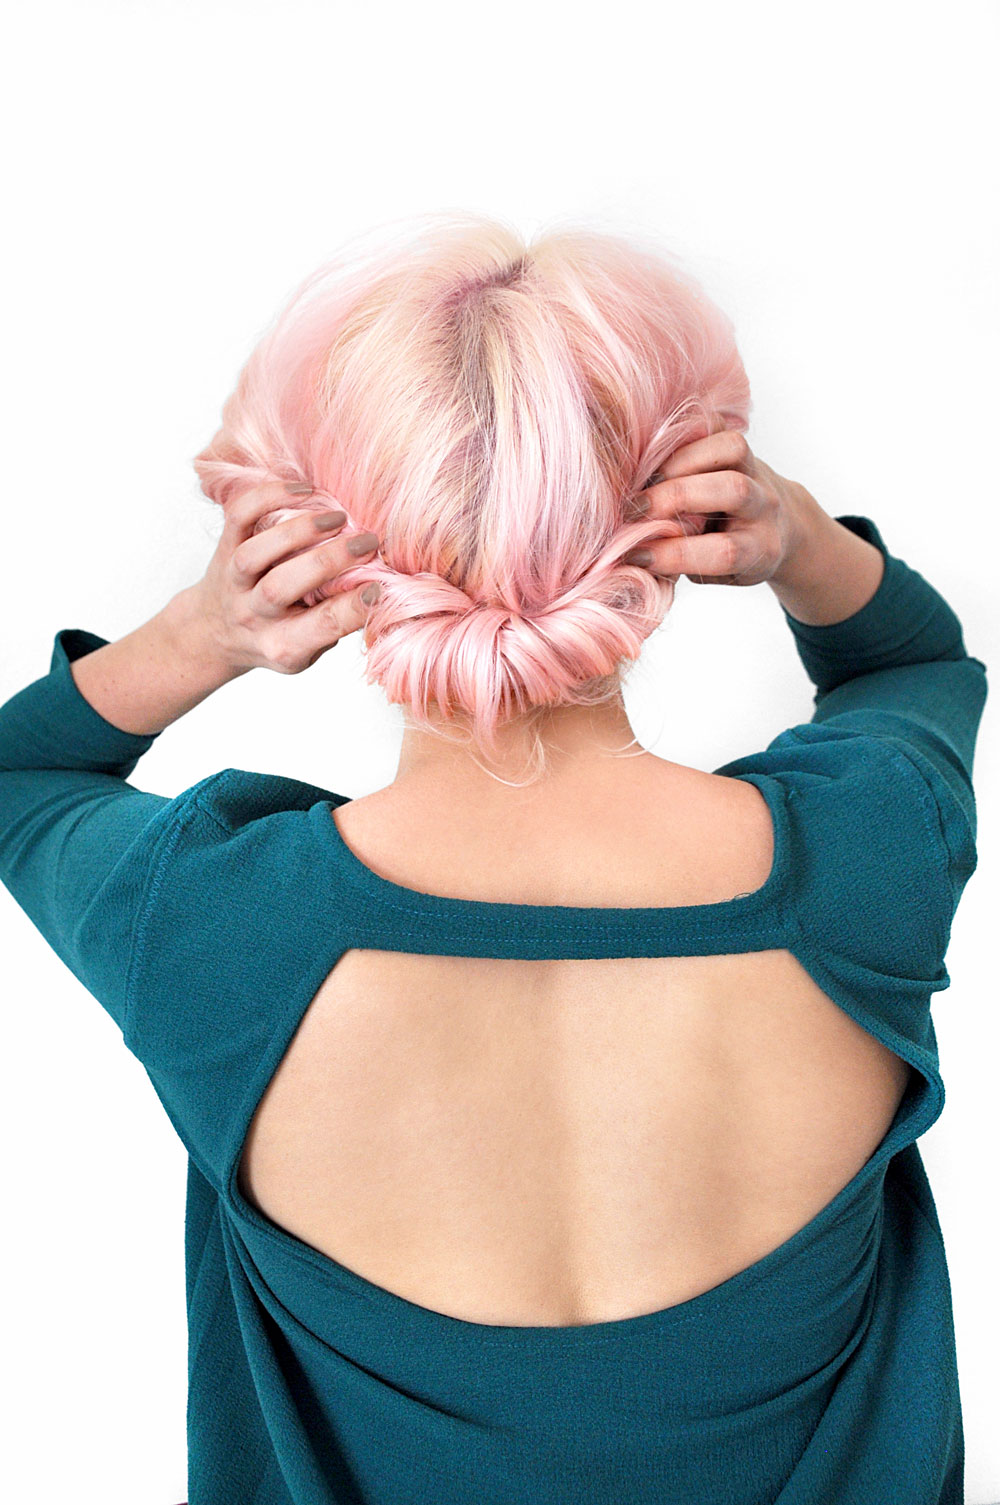 If you're pressed for time but still want to look cute, then try this super easy 5 minute messy updo hairstyle tutorial for that perfect tousled bun look.